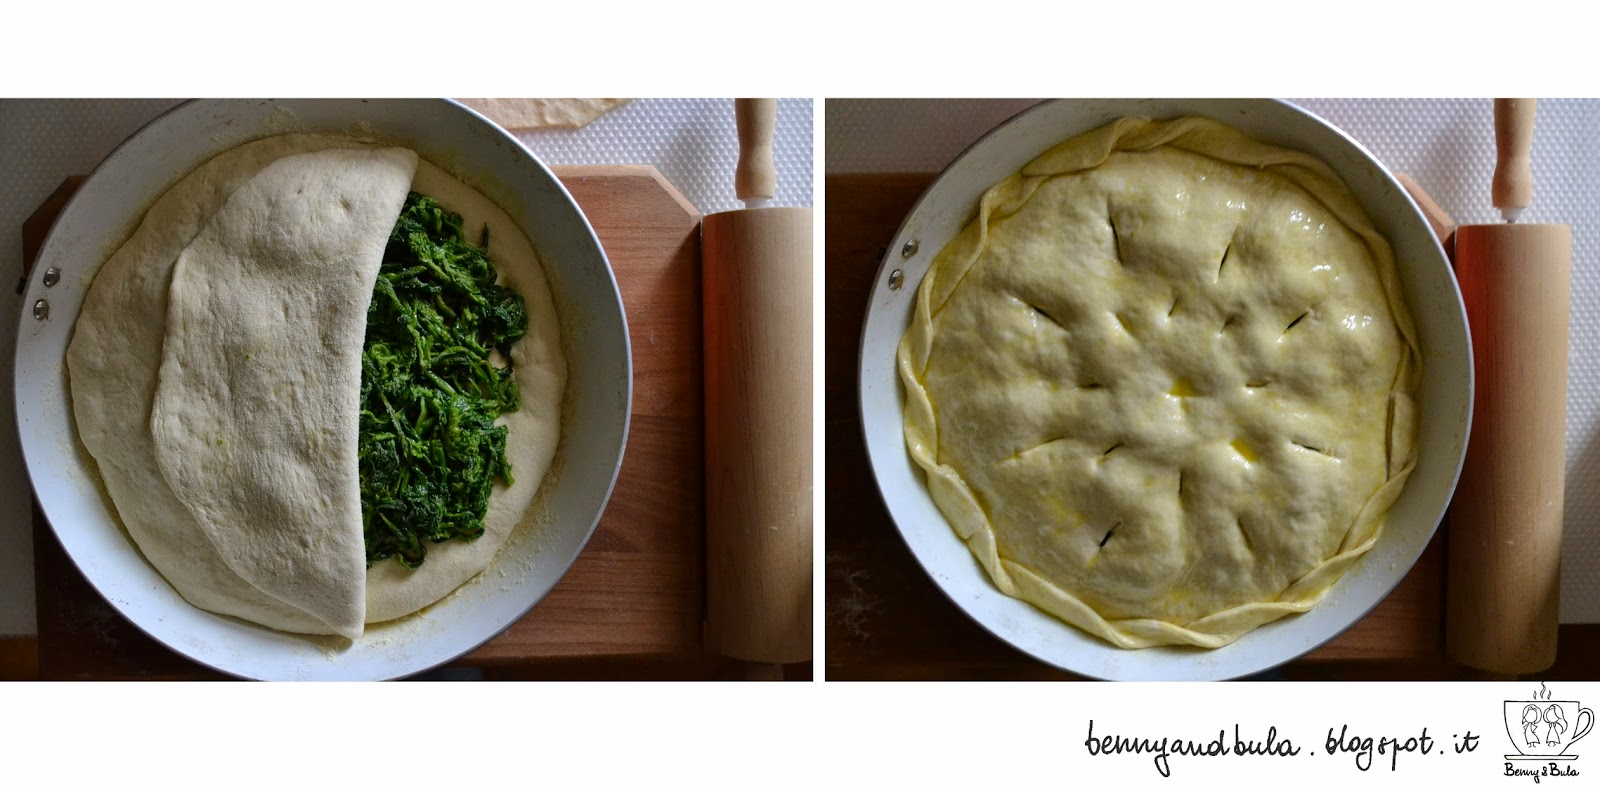 ricetta pizza ripiena con broccoletti/ broccoli stuffed or filled pizza pie recipe